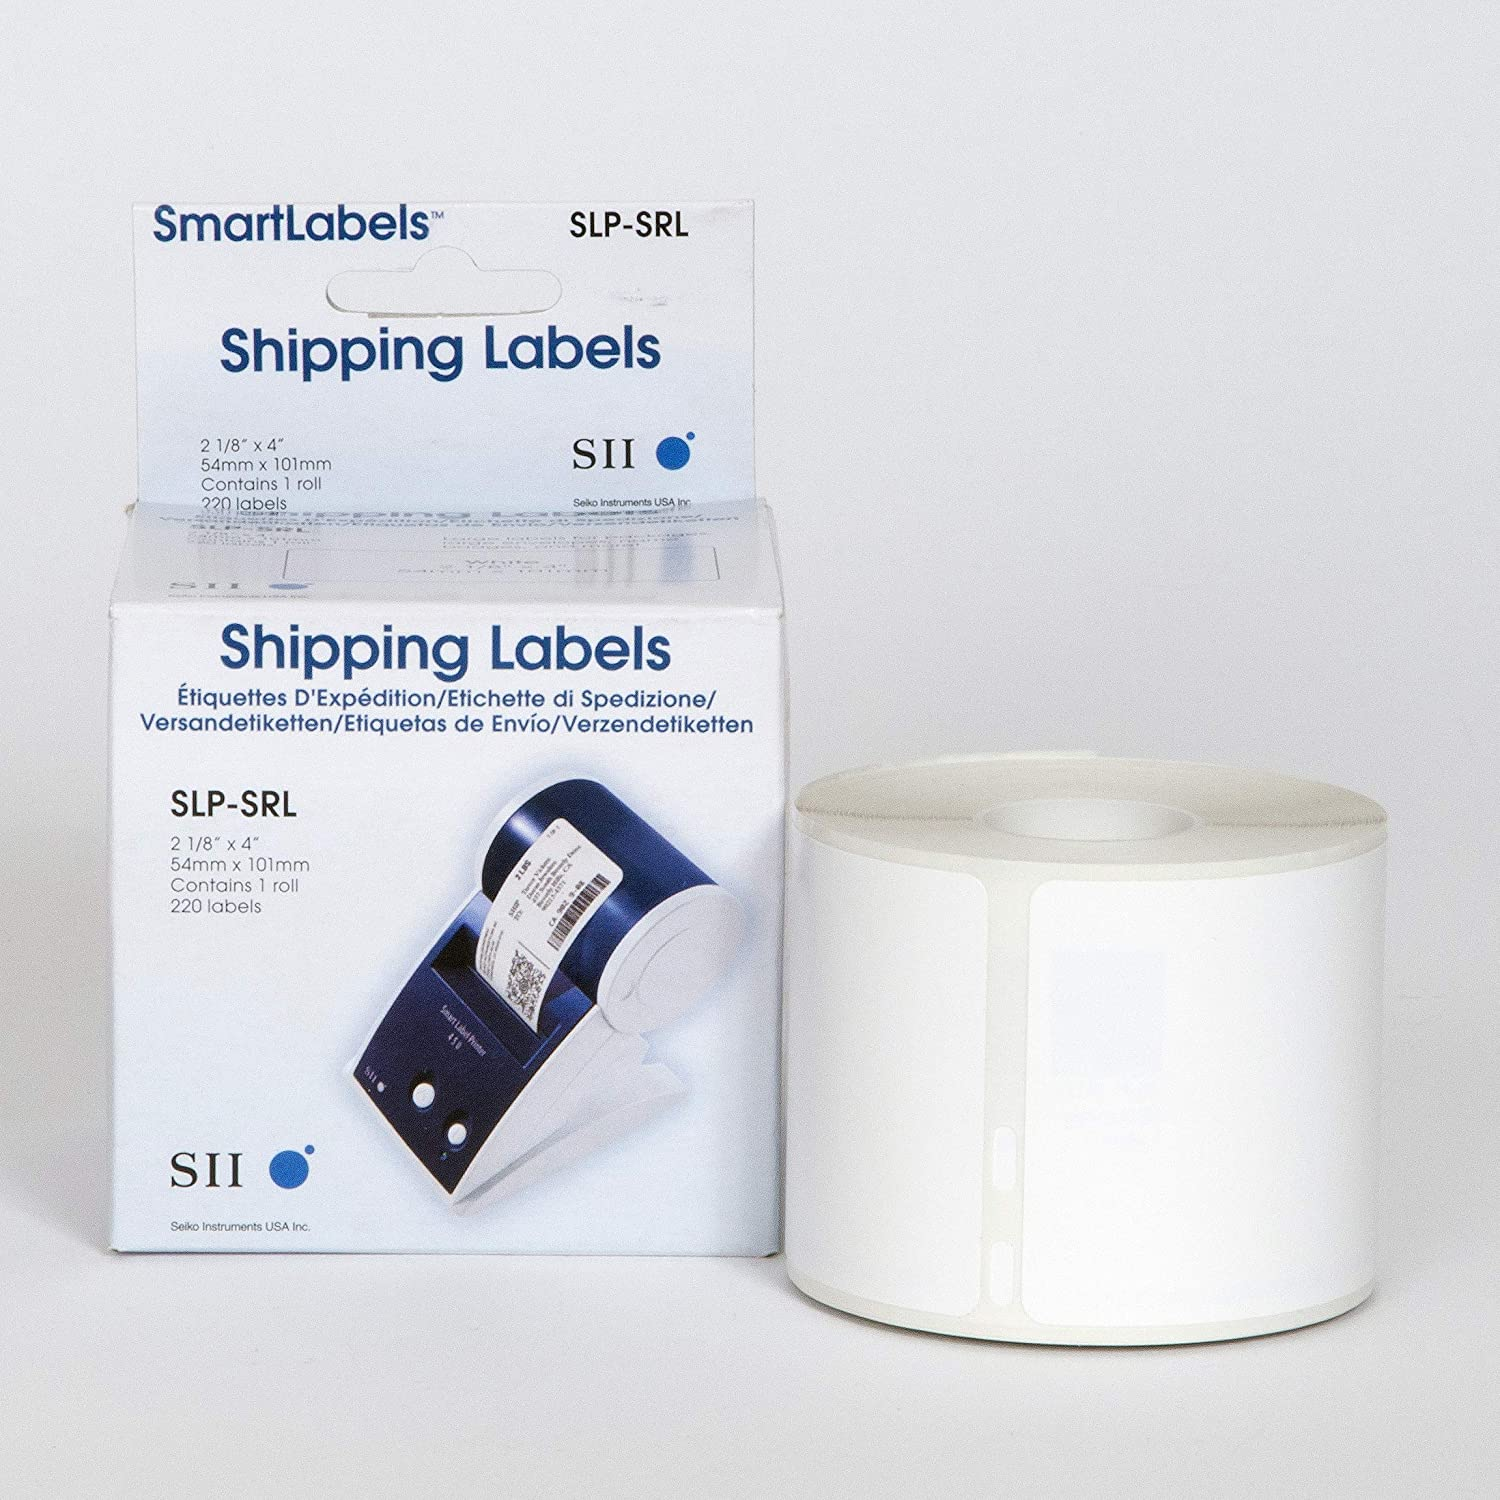 White Shipping Labels for Smart Label Printer - SLP-SRL | Direct Thermal Printing | Text, Barcodes, Logos and Image | High Speed & High Performance Portable Print | 1roll per Box, 220 Labels per roll: Office Products